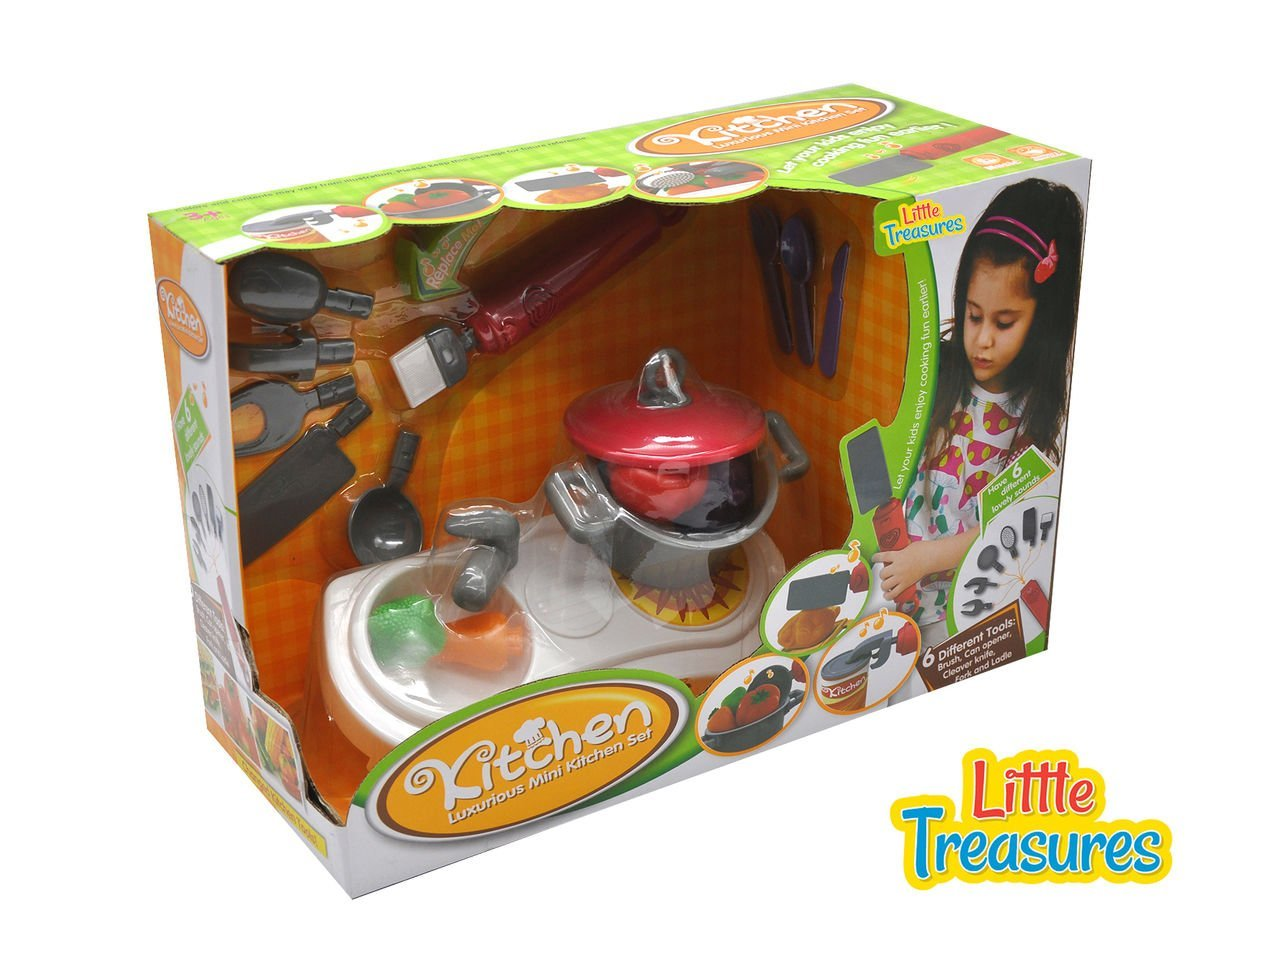 Quality Kitchen set from Little Treasures – Complete with luxurious mini Kitchen station with pot and Multi-tool with Brush, Can Opener, Cleaver, Knife, Fork, and Ladle – play set for children 3+